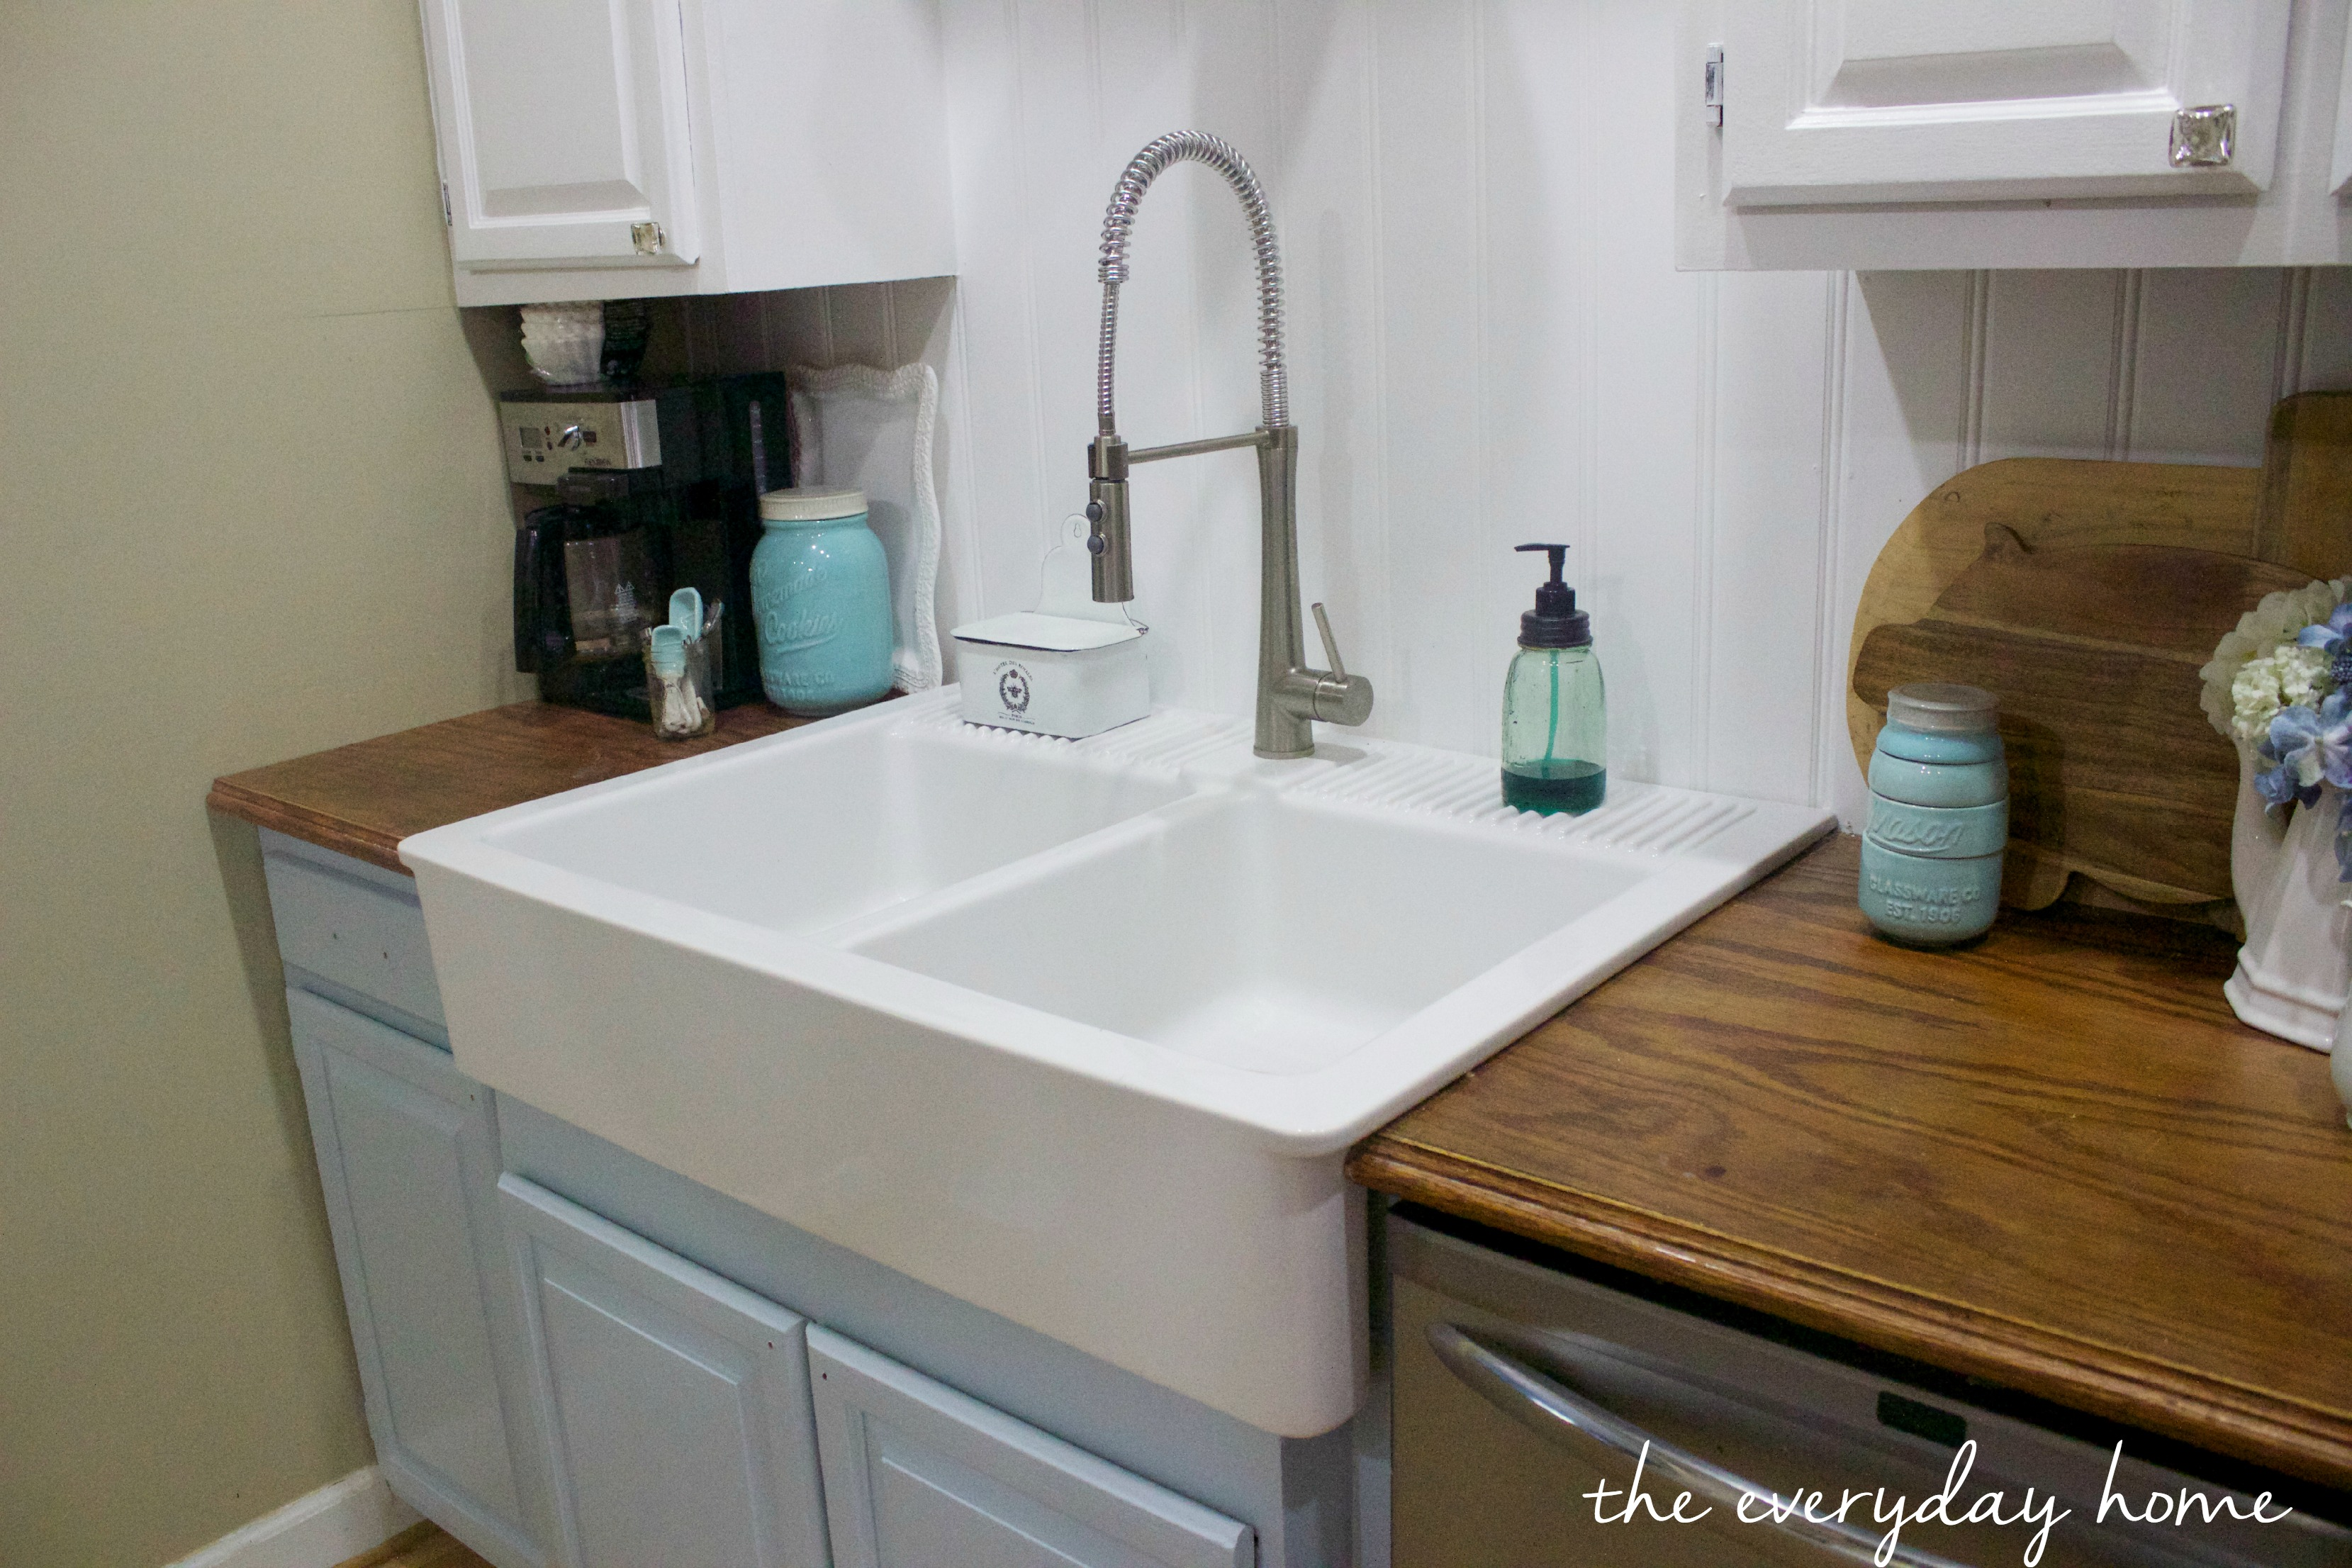 Ikea Apron Front Sink.Ikea Farmhouse Sink The Everyday Home